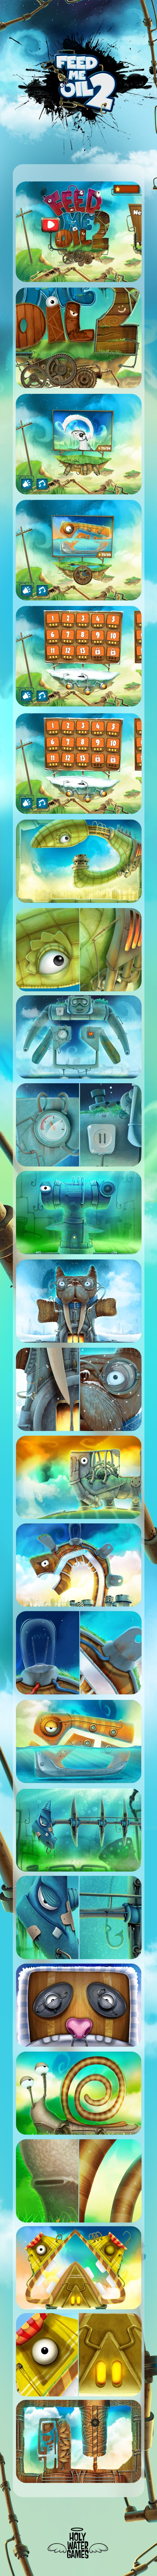 Feed Me Oil 2 - iPhone / iPad game by Burç Pulathaneli, via Behance